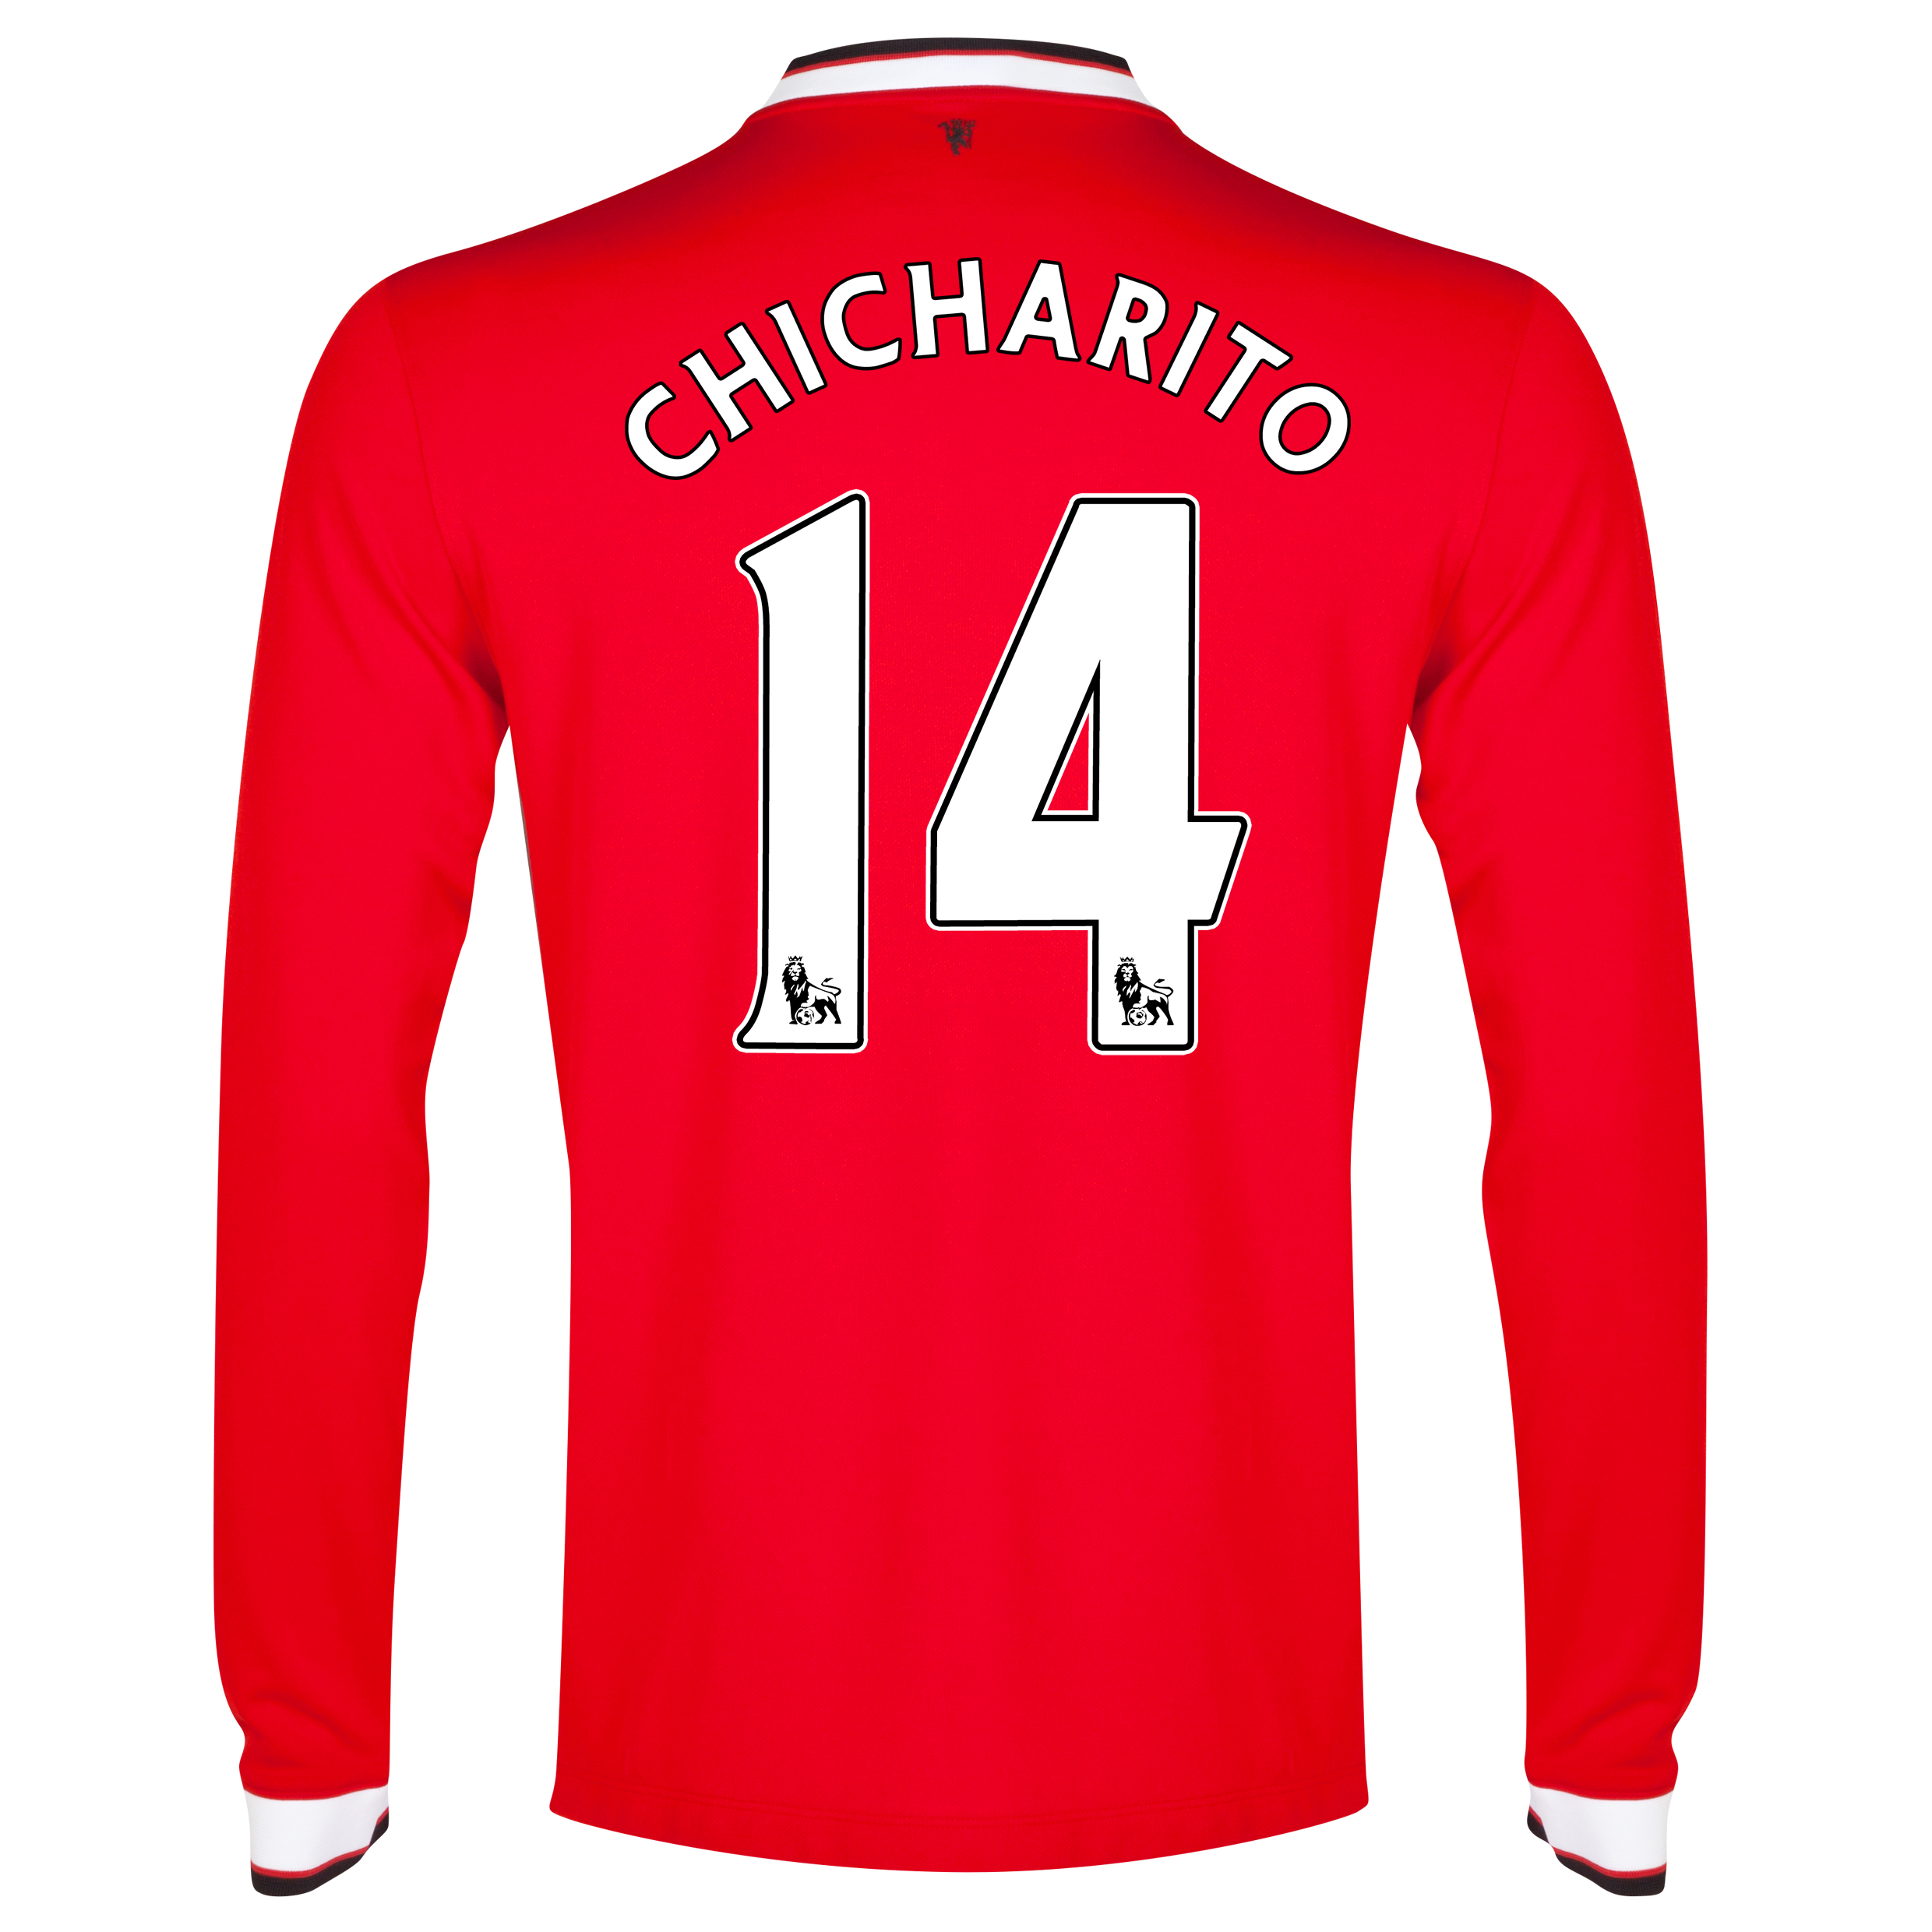 Manchester United Home Shirt 2014/15 - Long Sleeve - Kids Red with Chicharito 14 printing